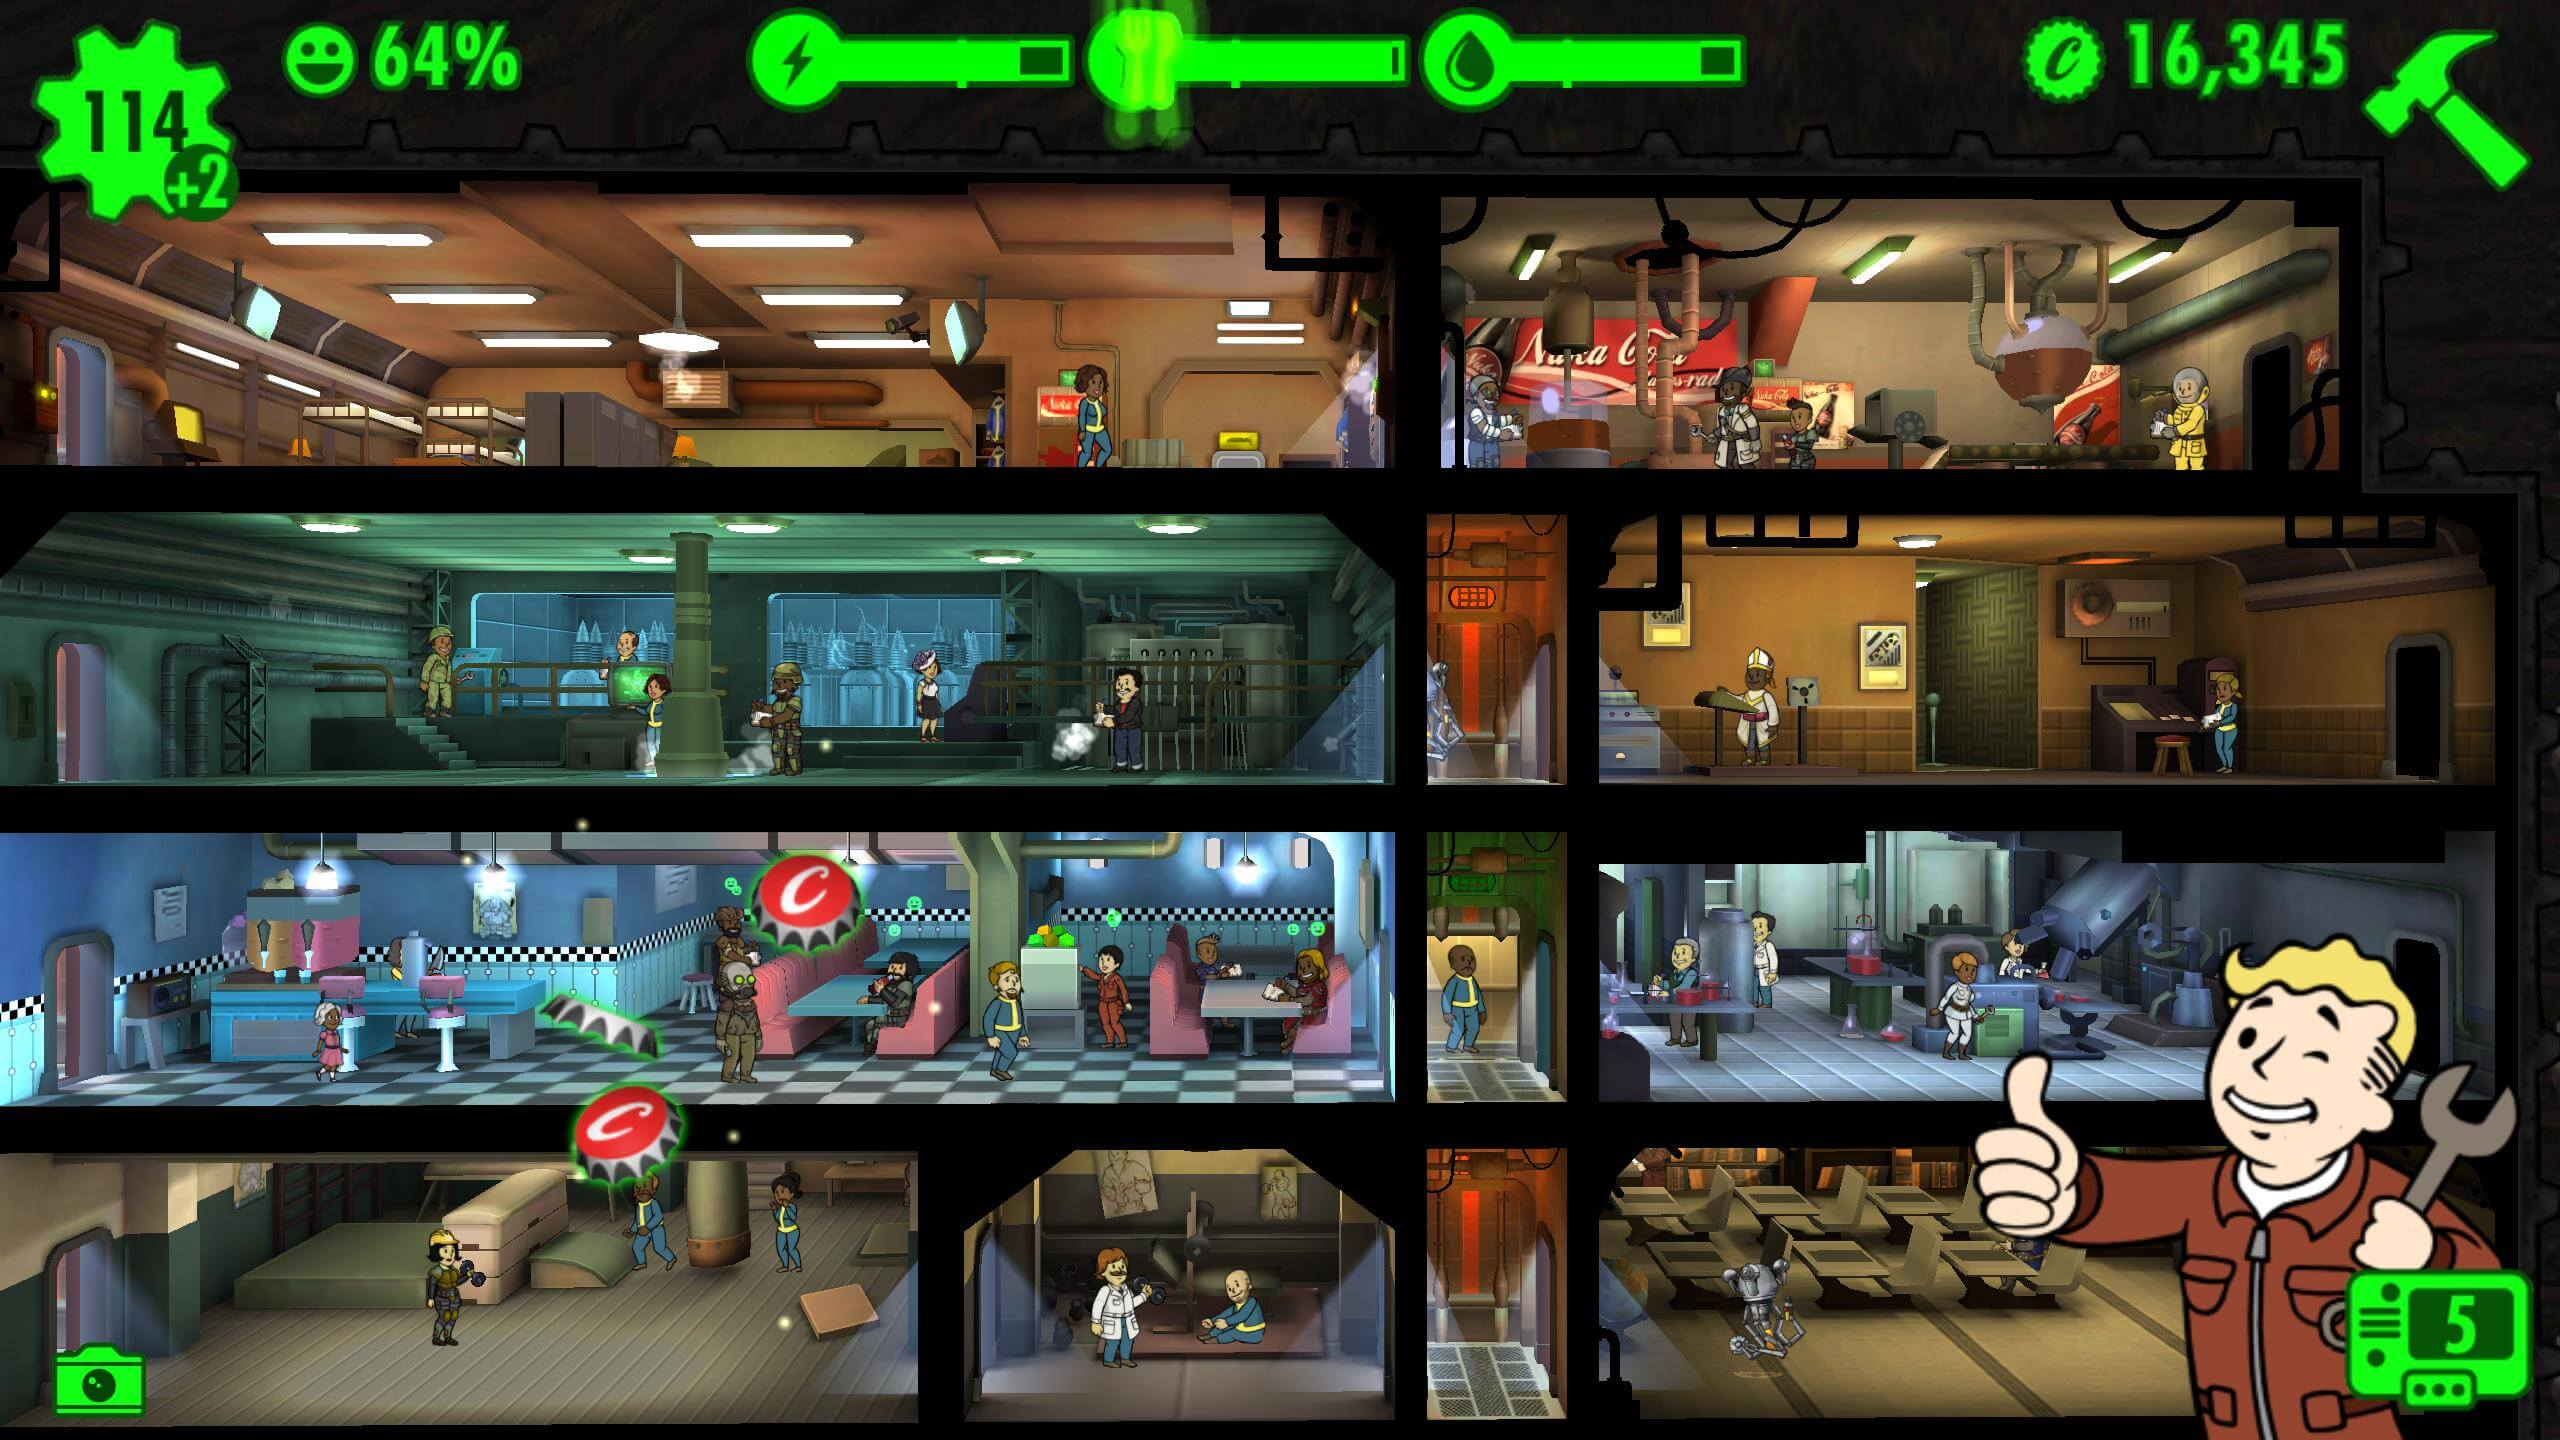 How to Download Fallout Shelter MOD APK?